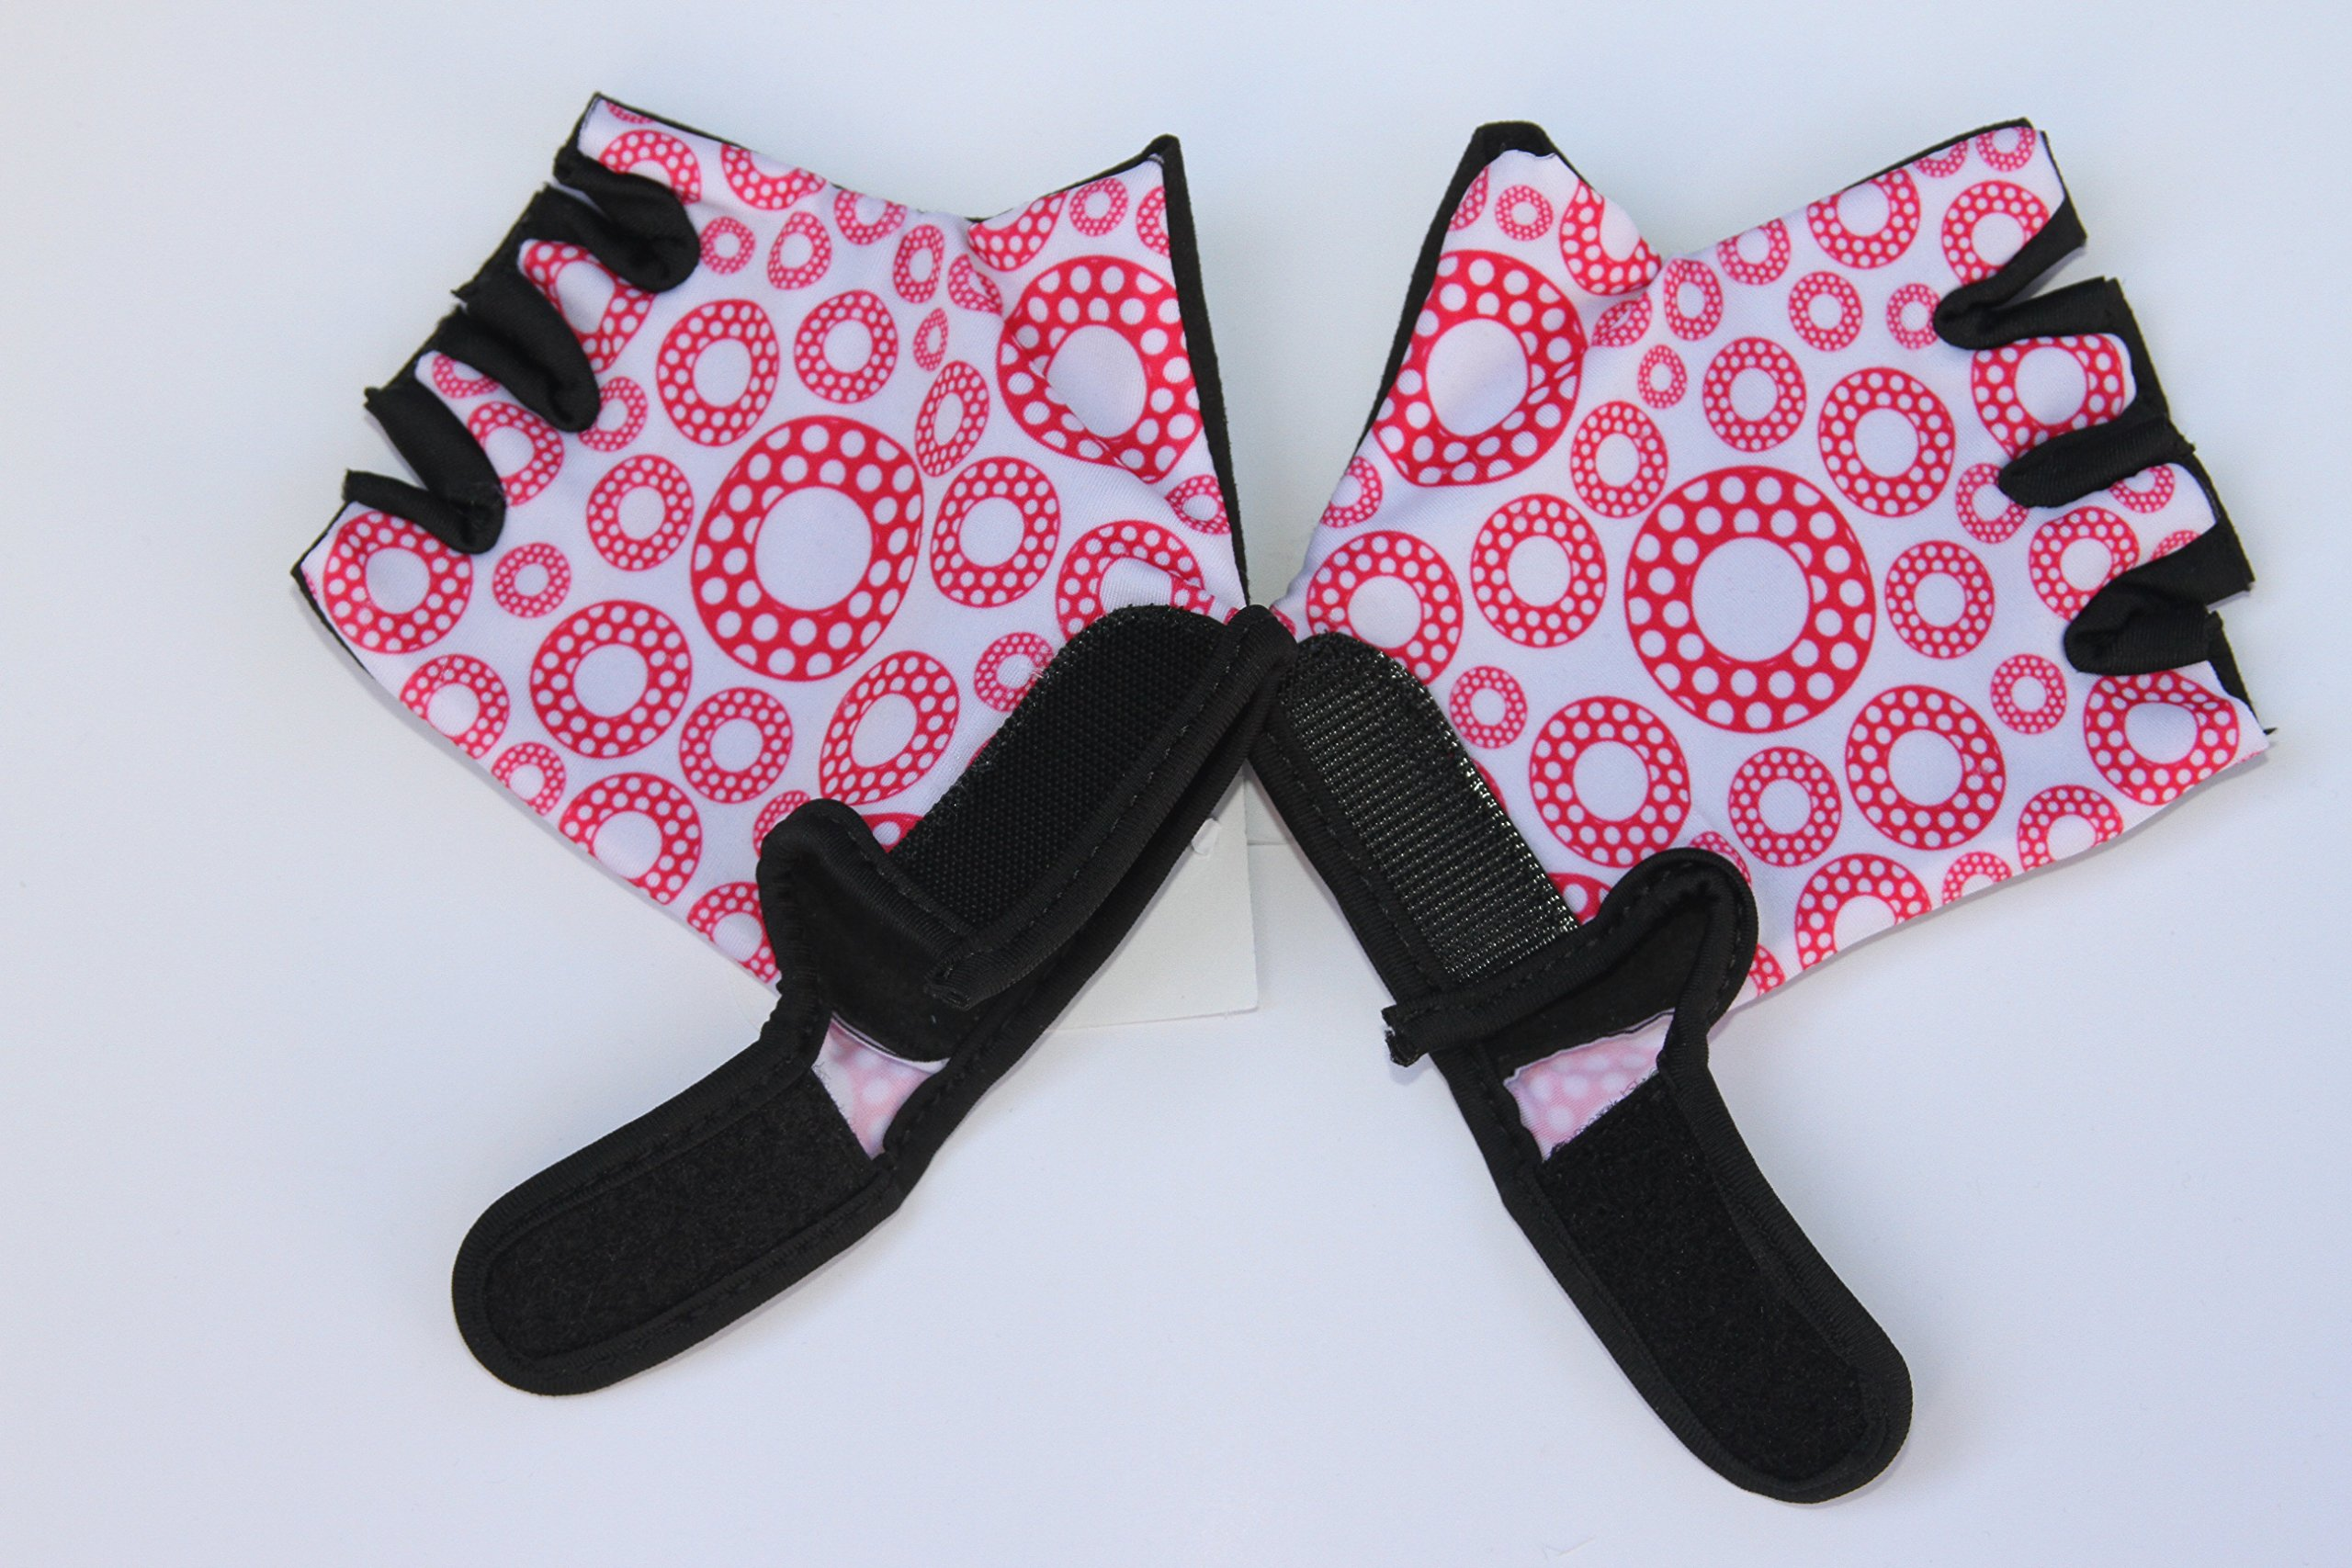 HANG Monkey Bars Gloves (Kids 5 and 6) with Grip Control by HANG (Image #2)